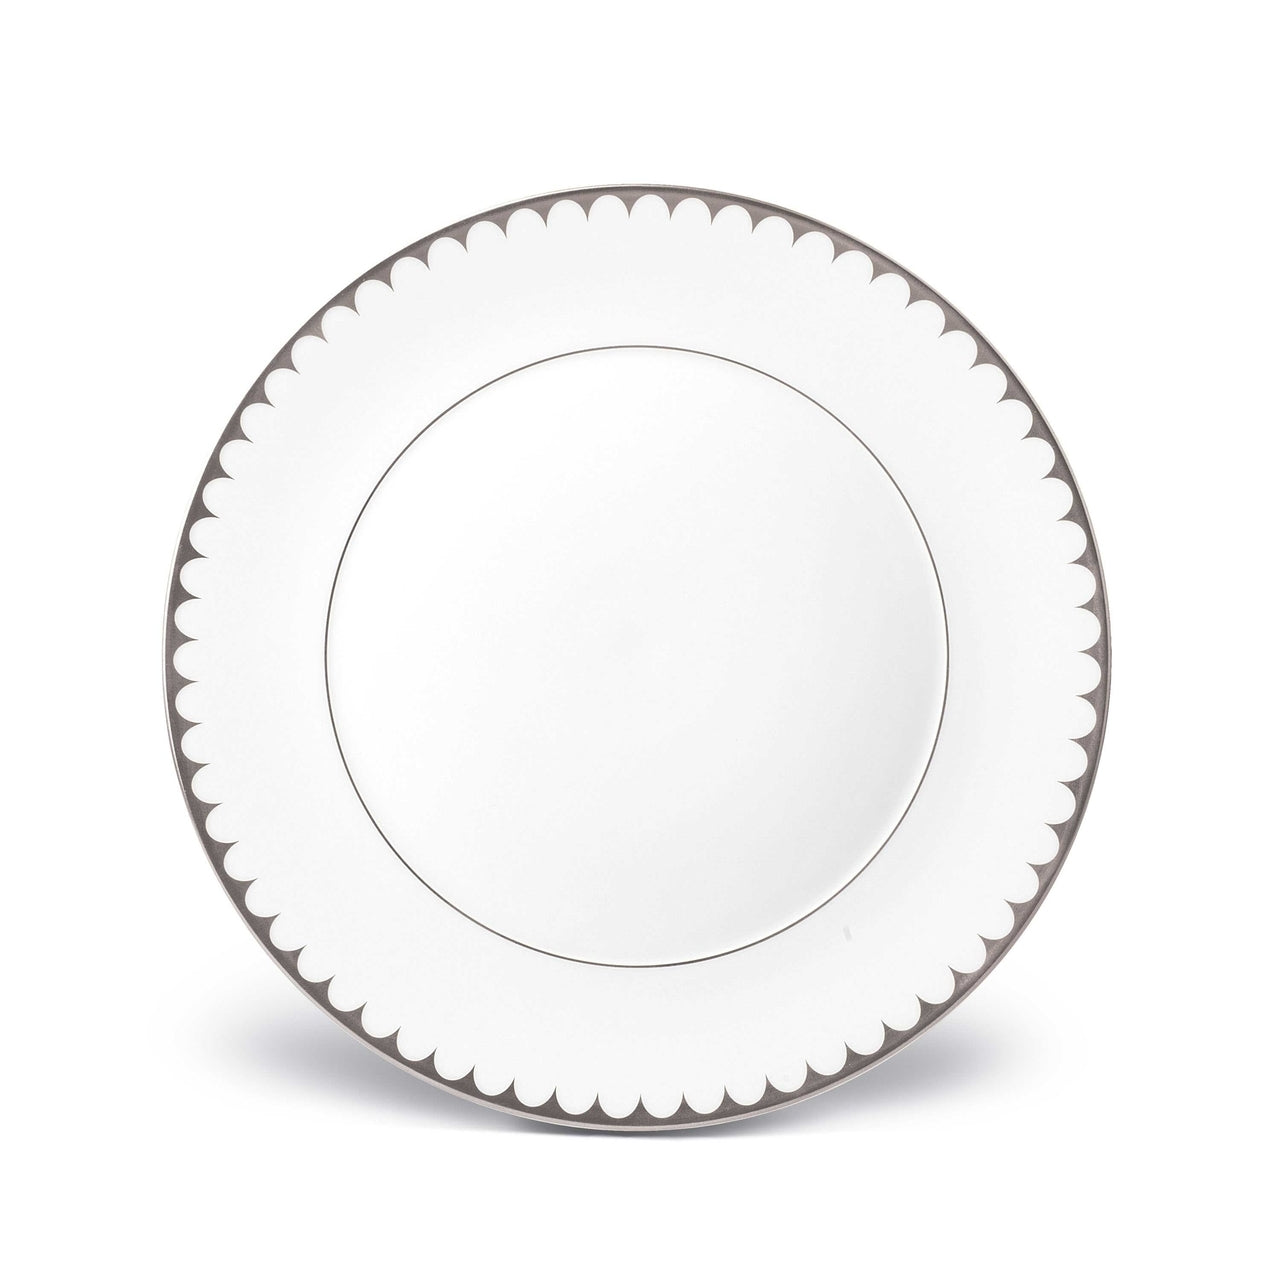 Aegean Filet Platinum Dinner Plate